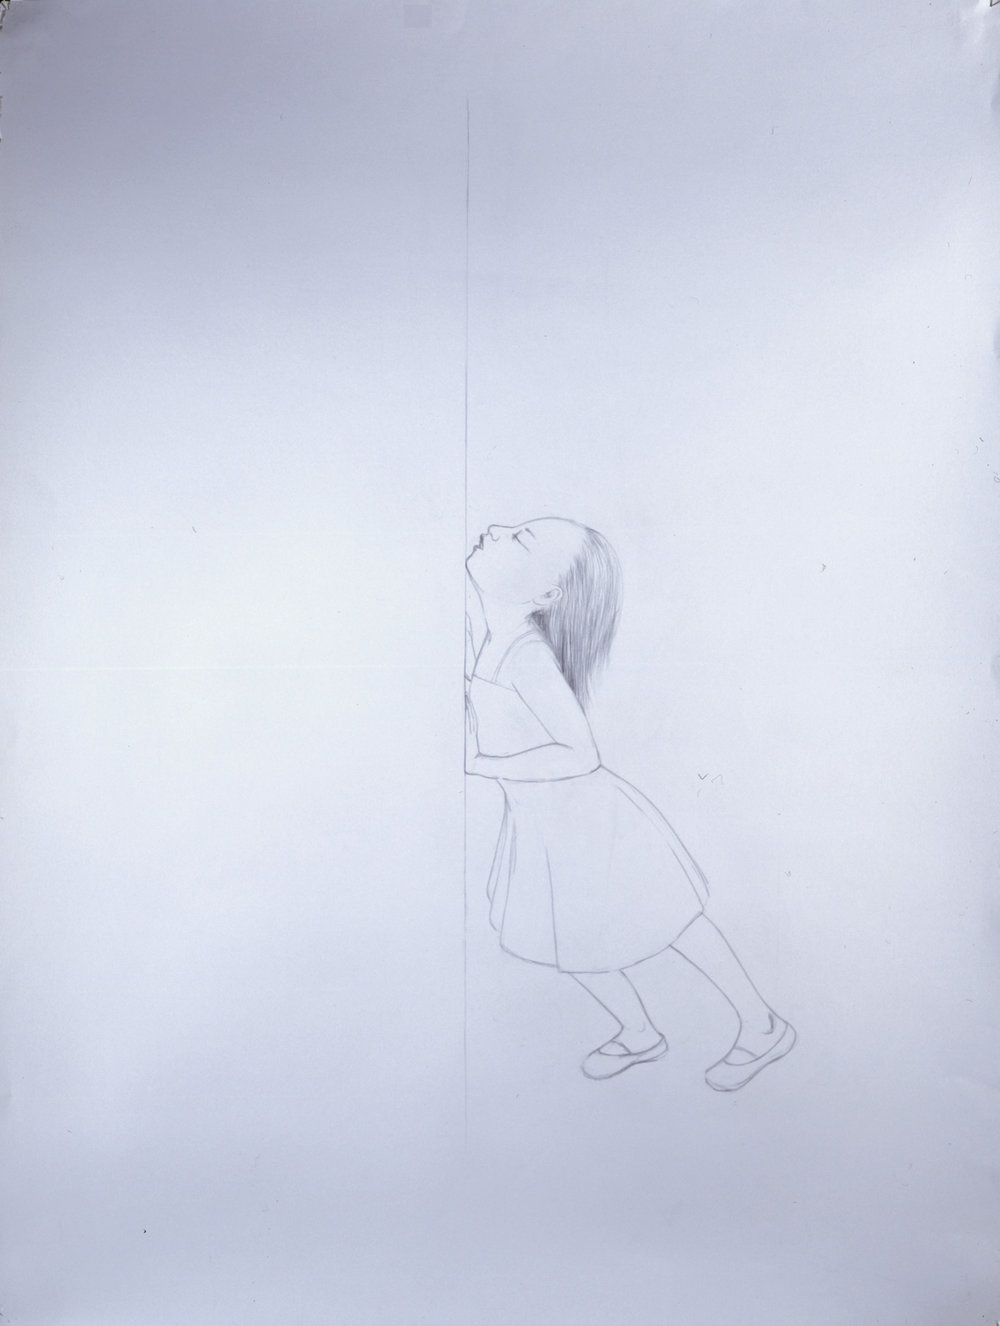 Kiss , 2005 Graphite on gray paper 50 X 38 inches Private collection